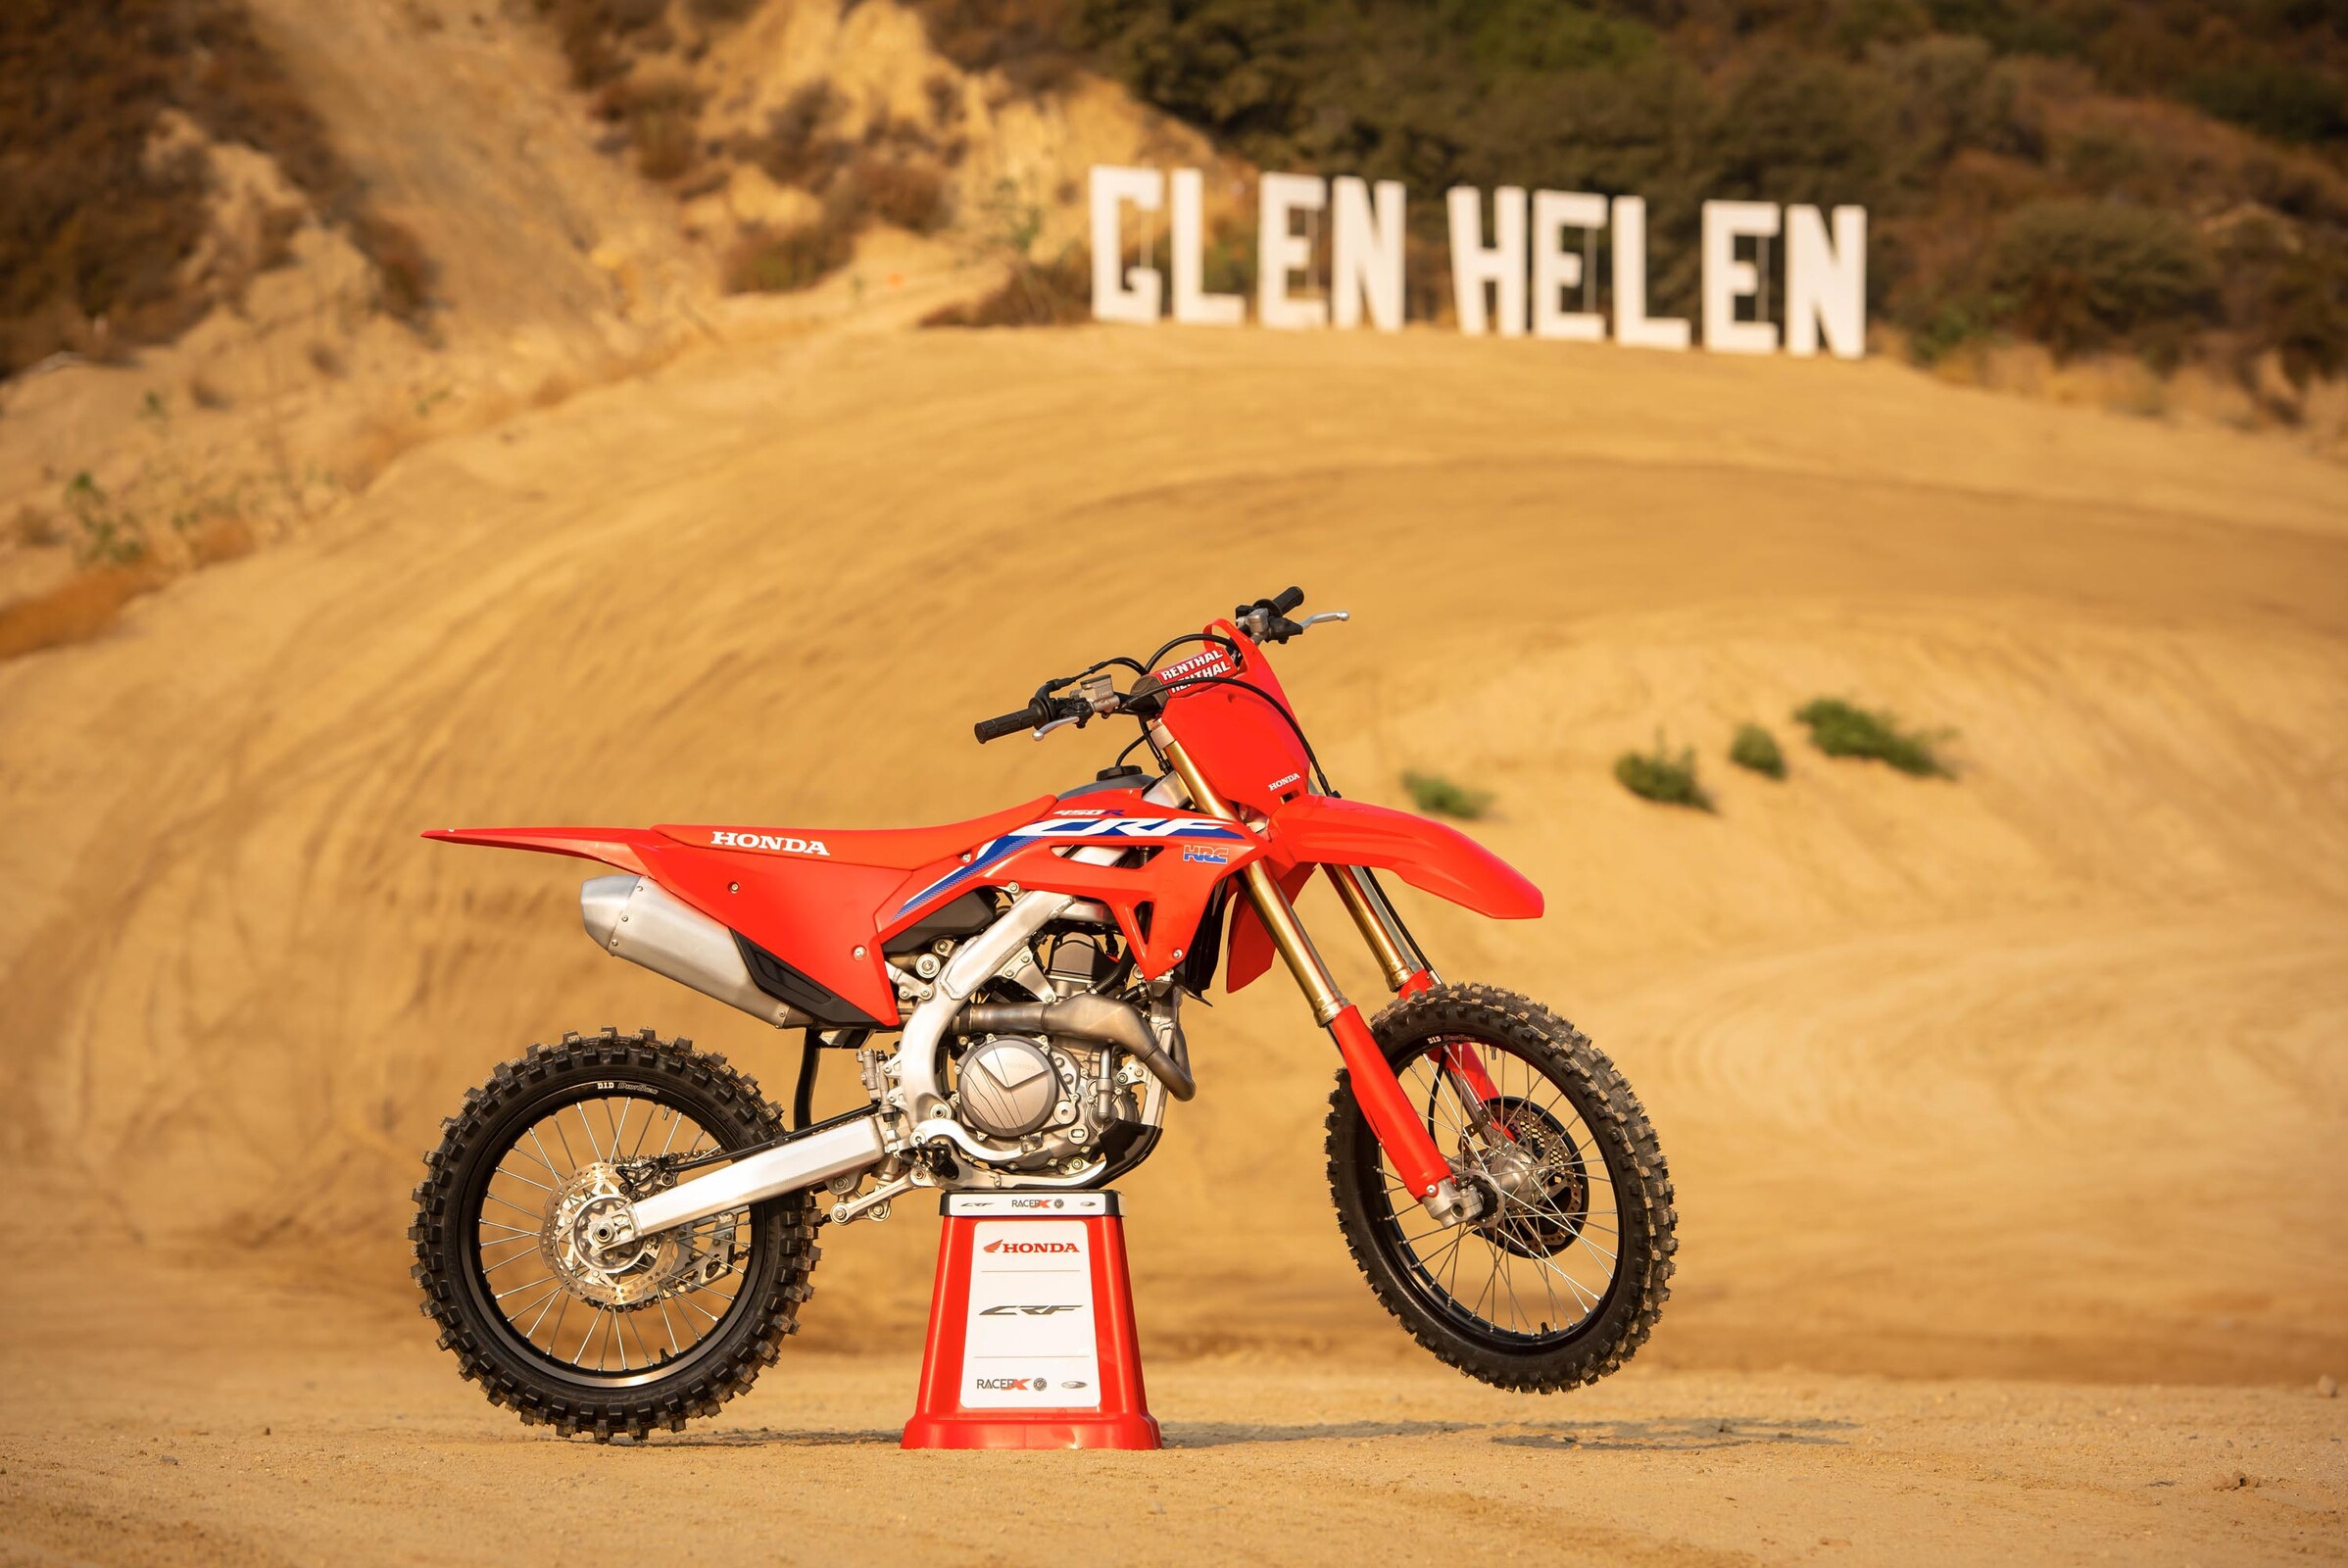 all-new 2021 honda crf450r bike introduction video - racer